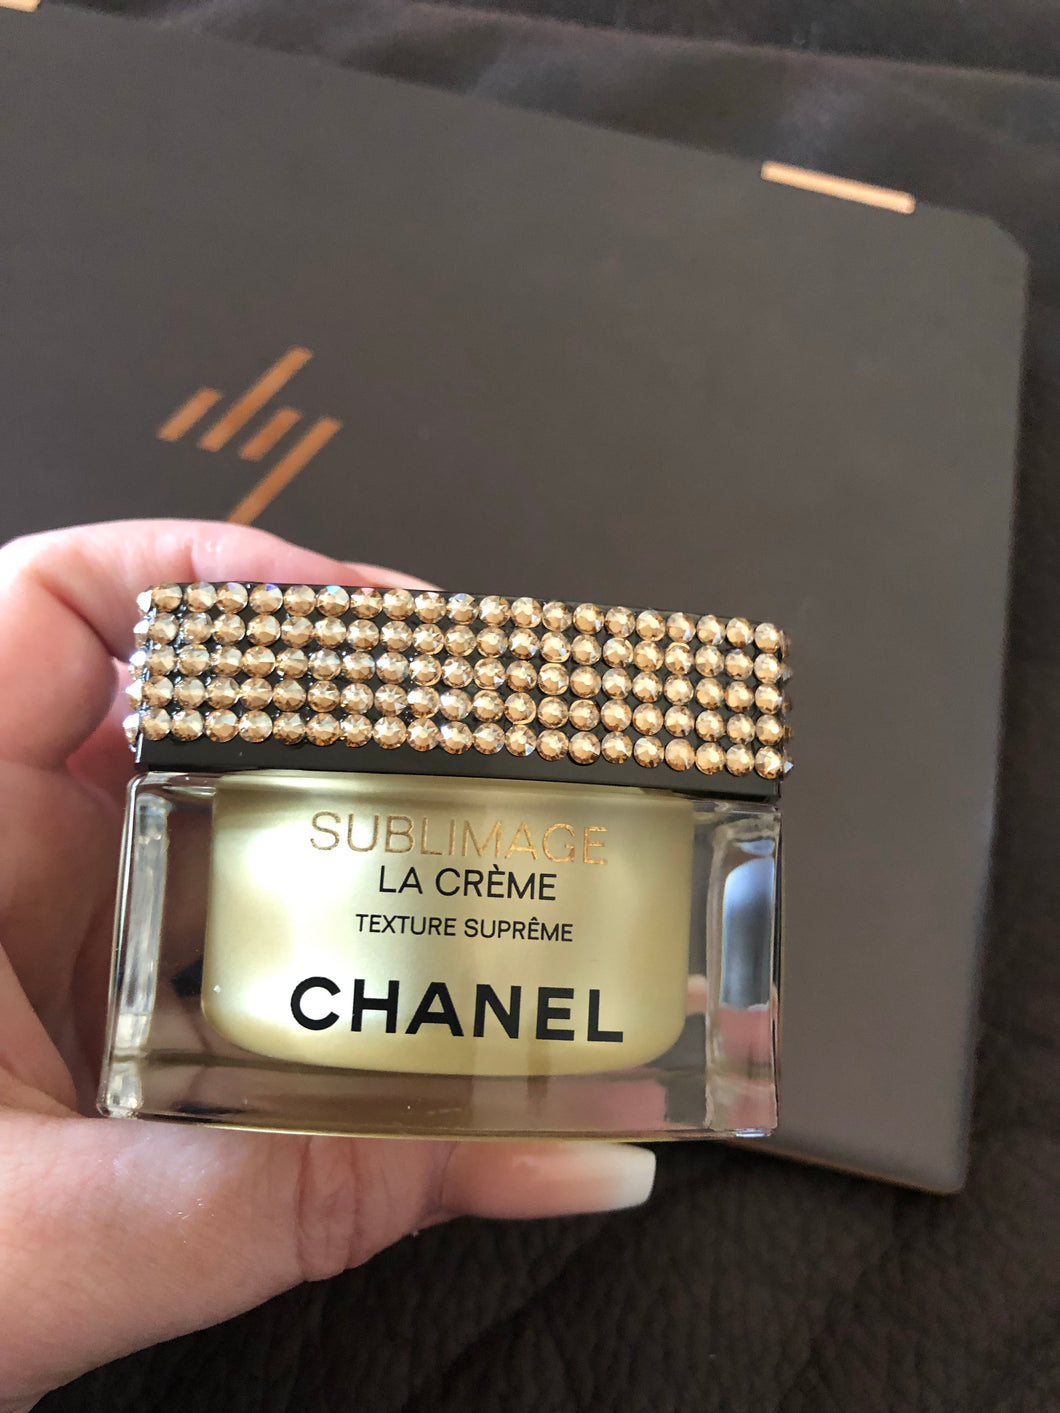 Swarovski embellished Chanel empty container